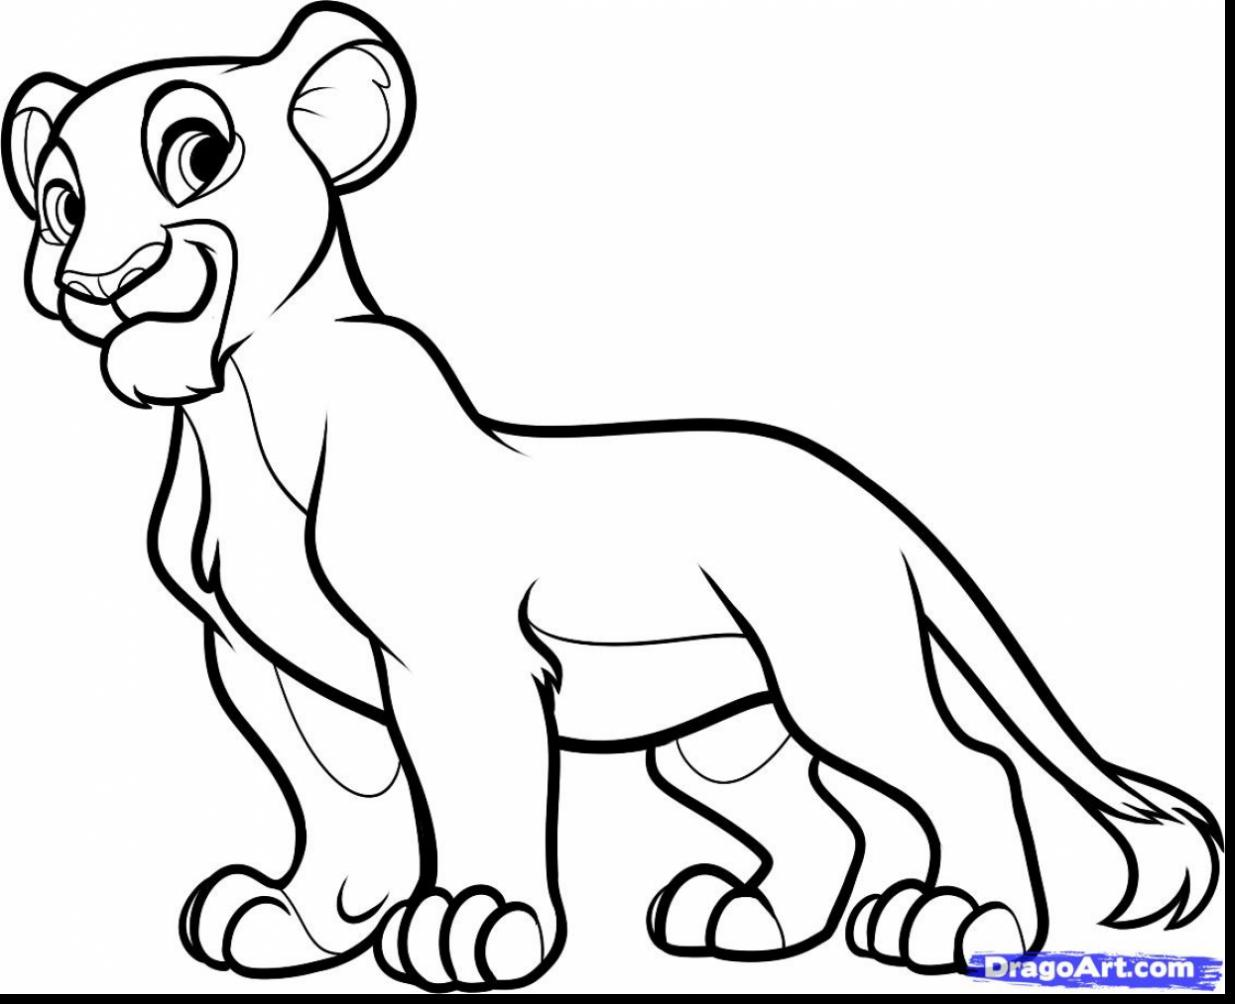 Best Free Lion King Scar Coloring Pages Design Coloring Pages For Children And Adult